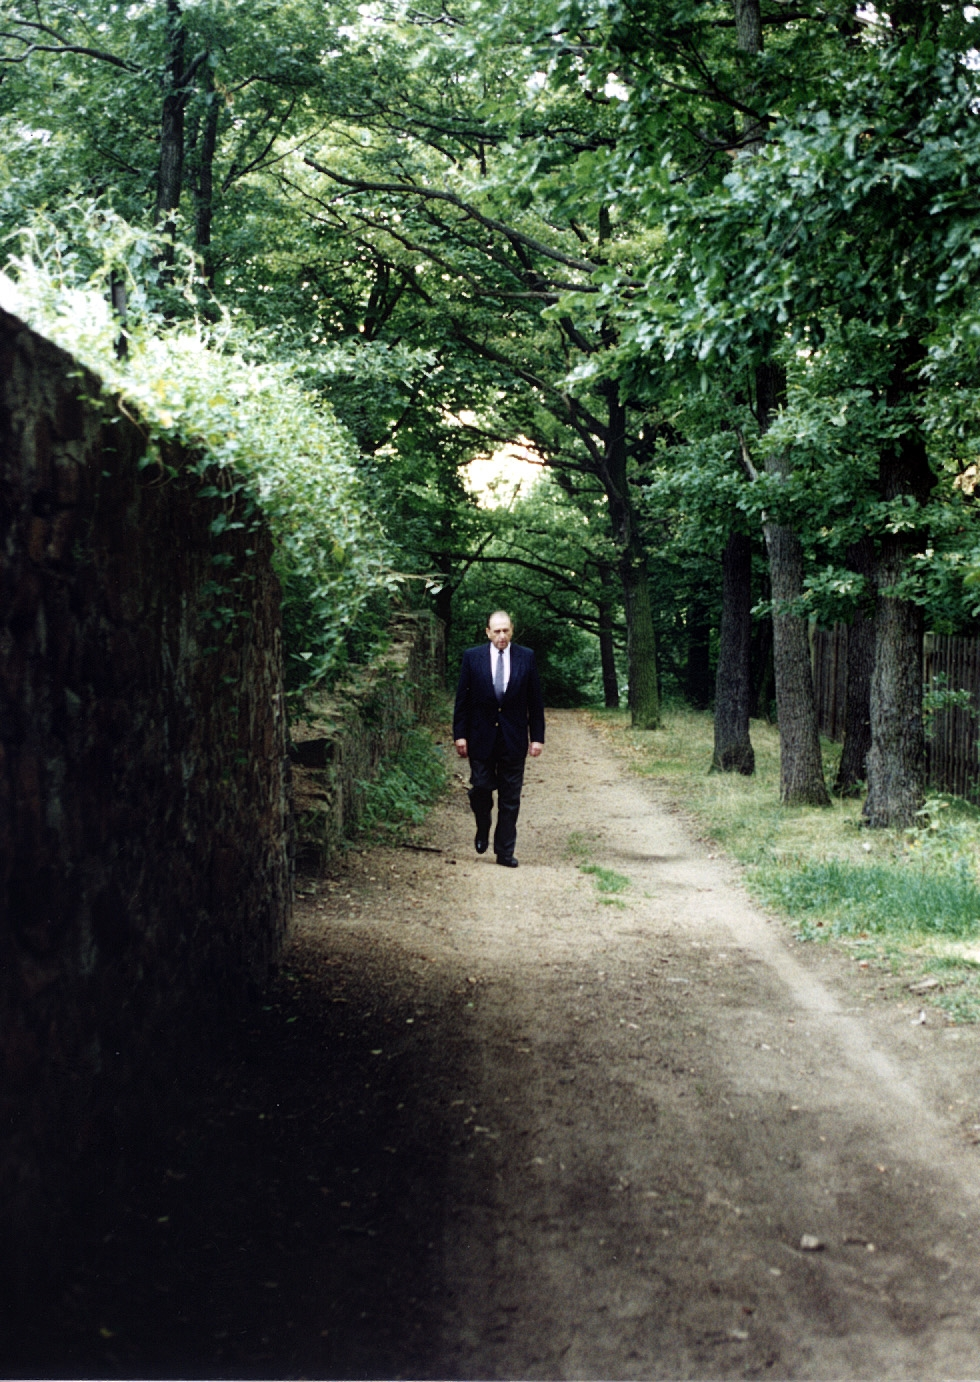 A photo taken on Aug. 26, 1995, shows President Thomas S. Monson walking from site where years earlier he offered a prayer upon the land of the German Democratic Republic (East Germany).